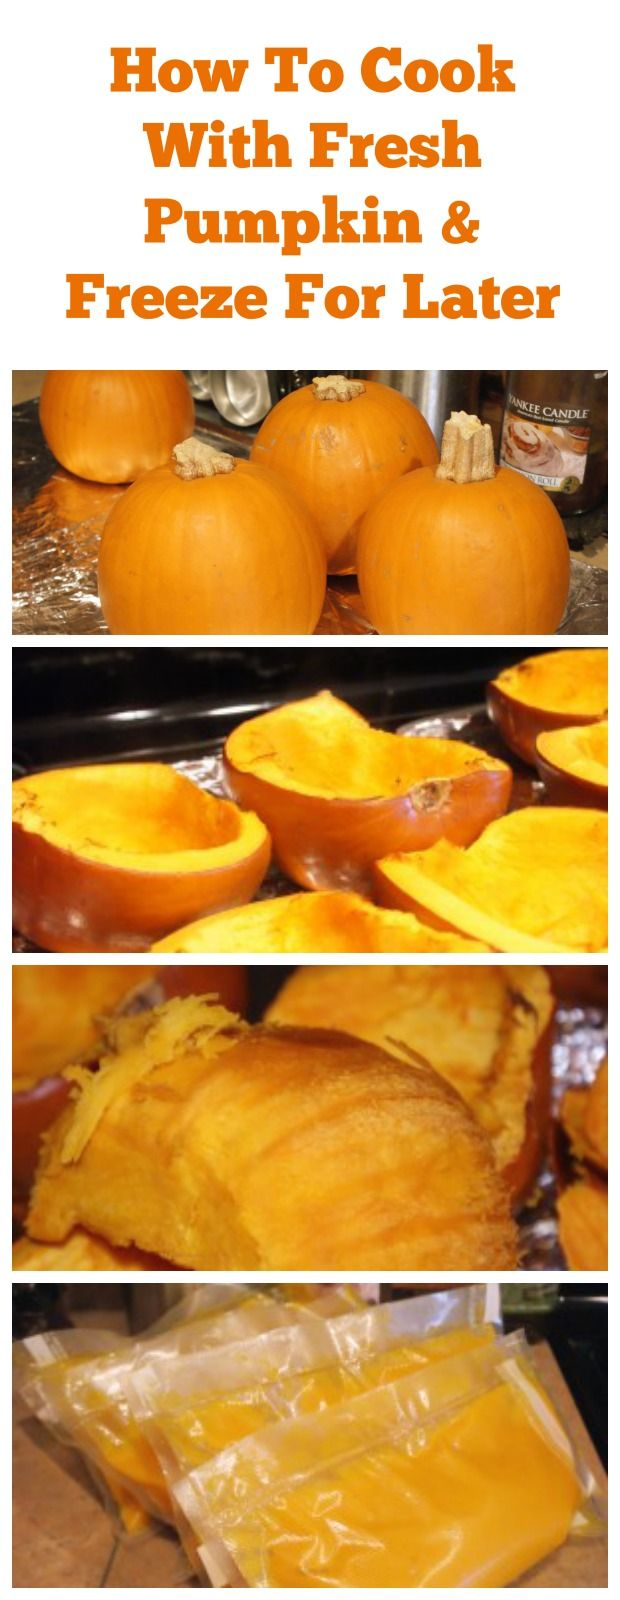 This is an easy tutorial on How to Freeze & How to Can Fresh Pumpkin with pumpkin pie pumpkins. It's easy and a great way to use fresh pumpkin in your recipes!